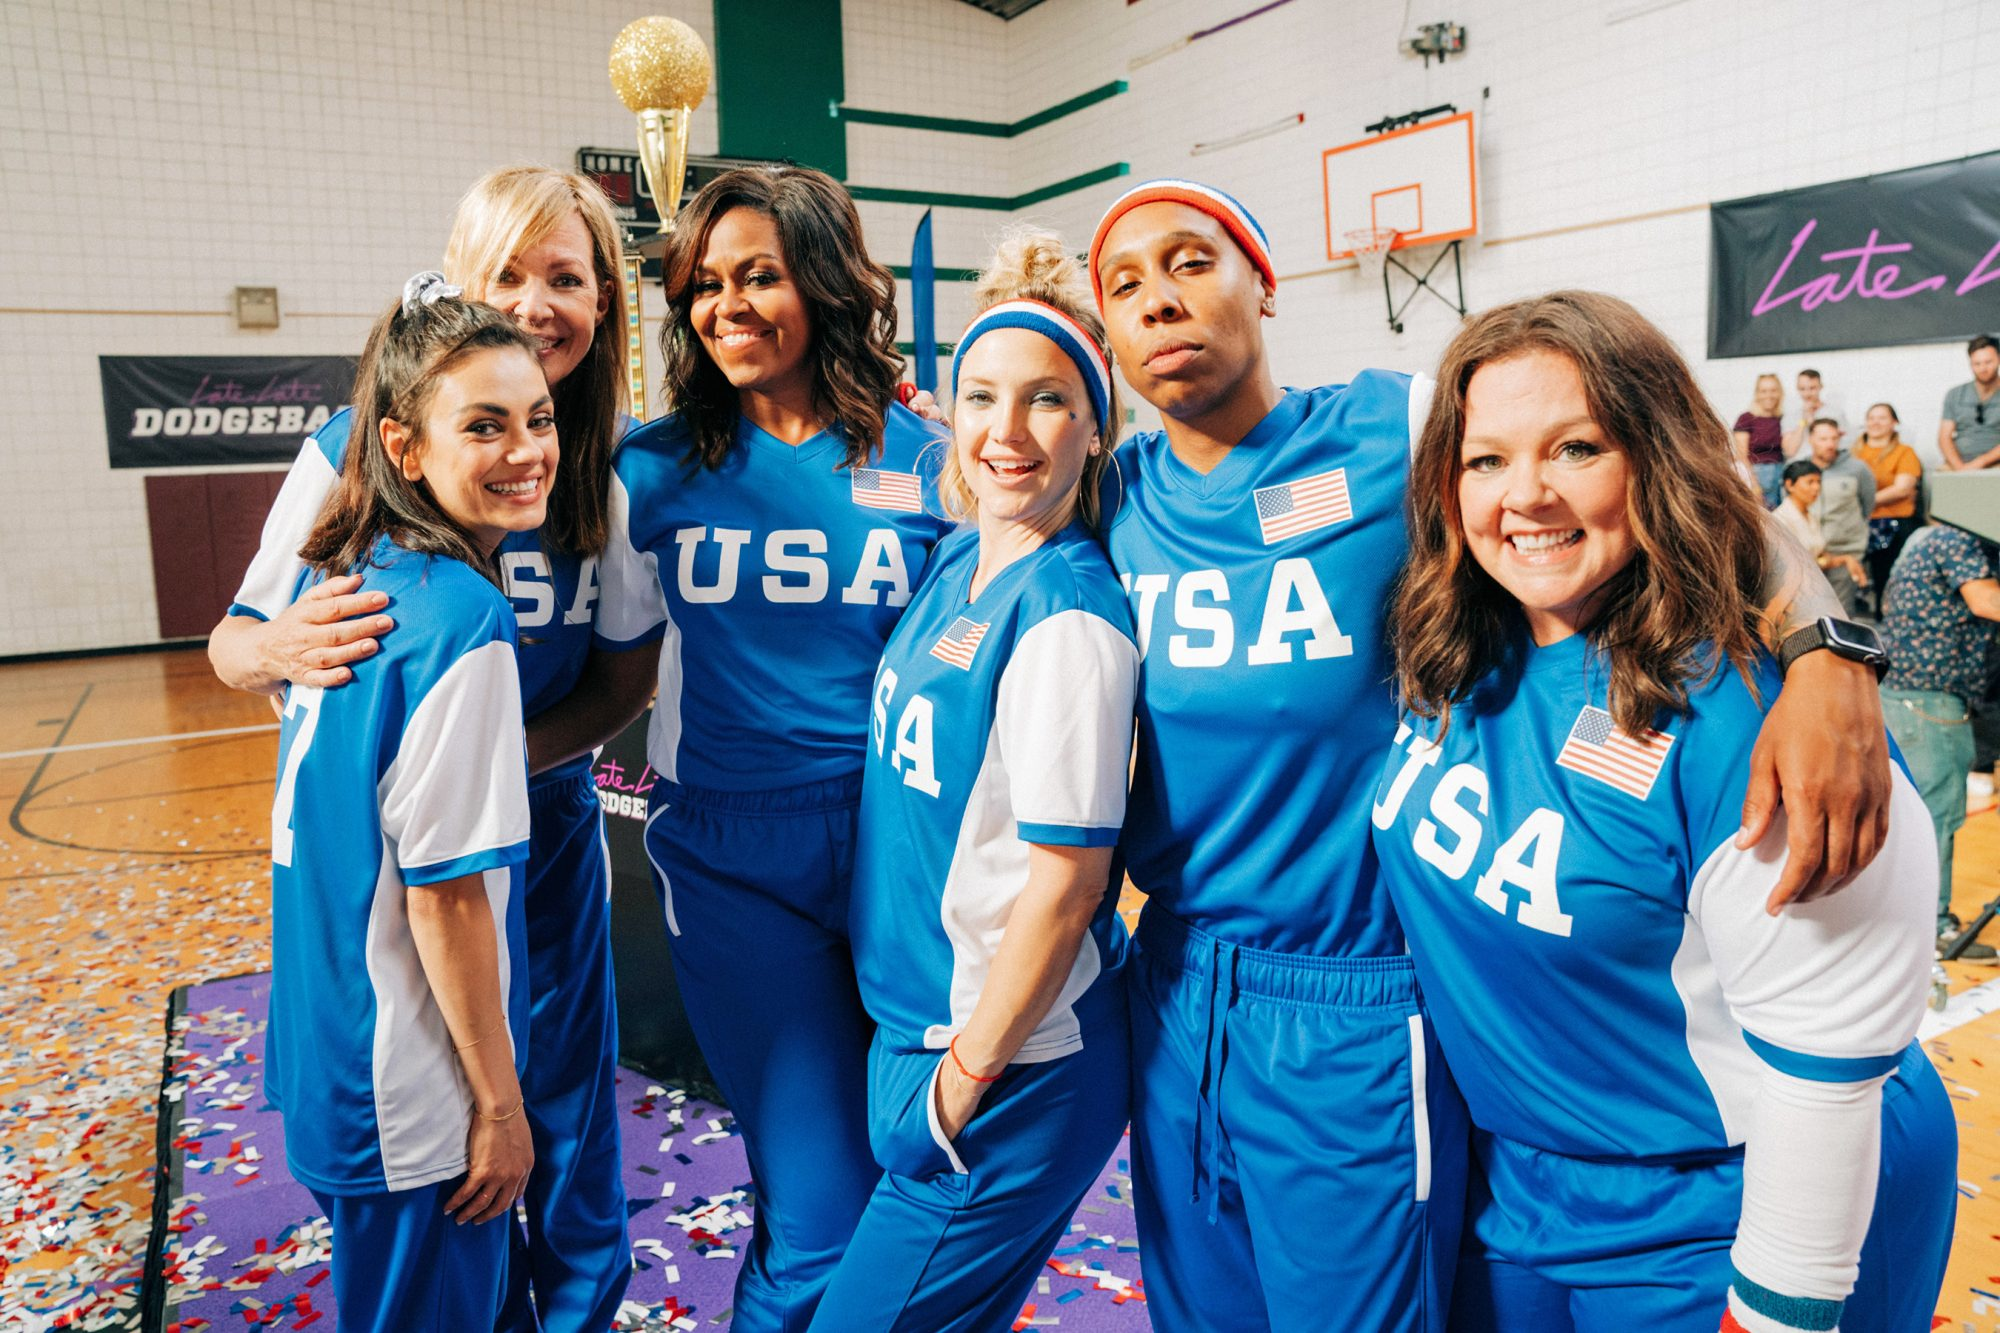 Former First Lady Michelle Obama Leads Team USA against James Corden's Team UK in an epic USA vs UK Dodgeball Game, featuring Melissa McCarthy, Benedict Cumberbatch, Harry Styles, Kate Hudson, Allison Janney, Mila Kunis, Lena Waithe and John Bradley, on The Late Late Show with James Corden